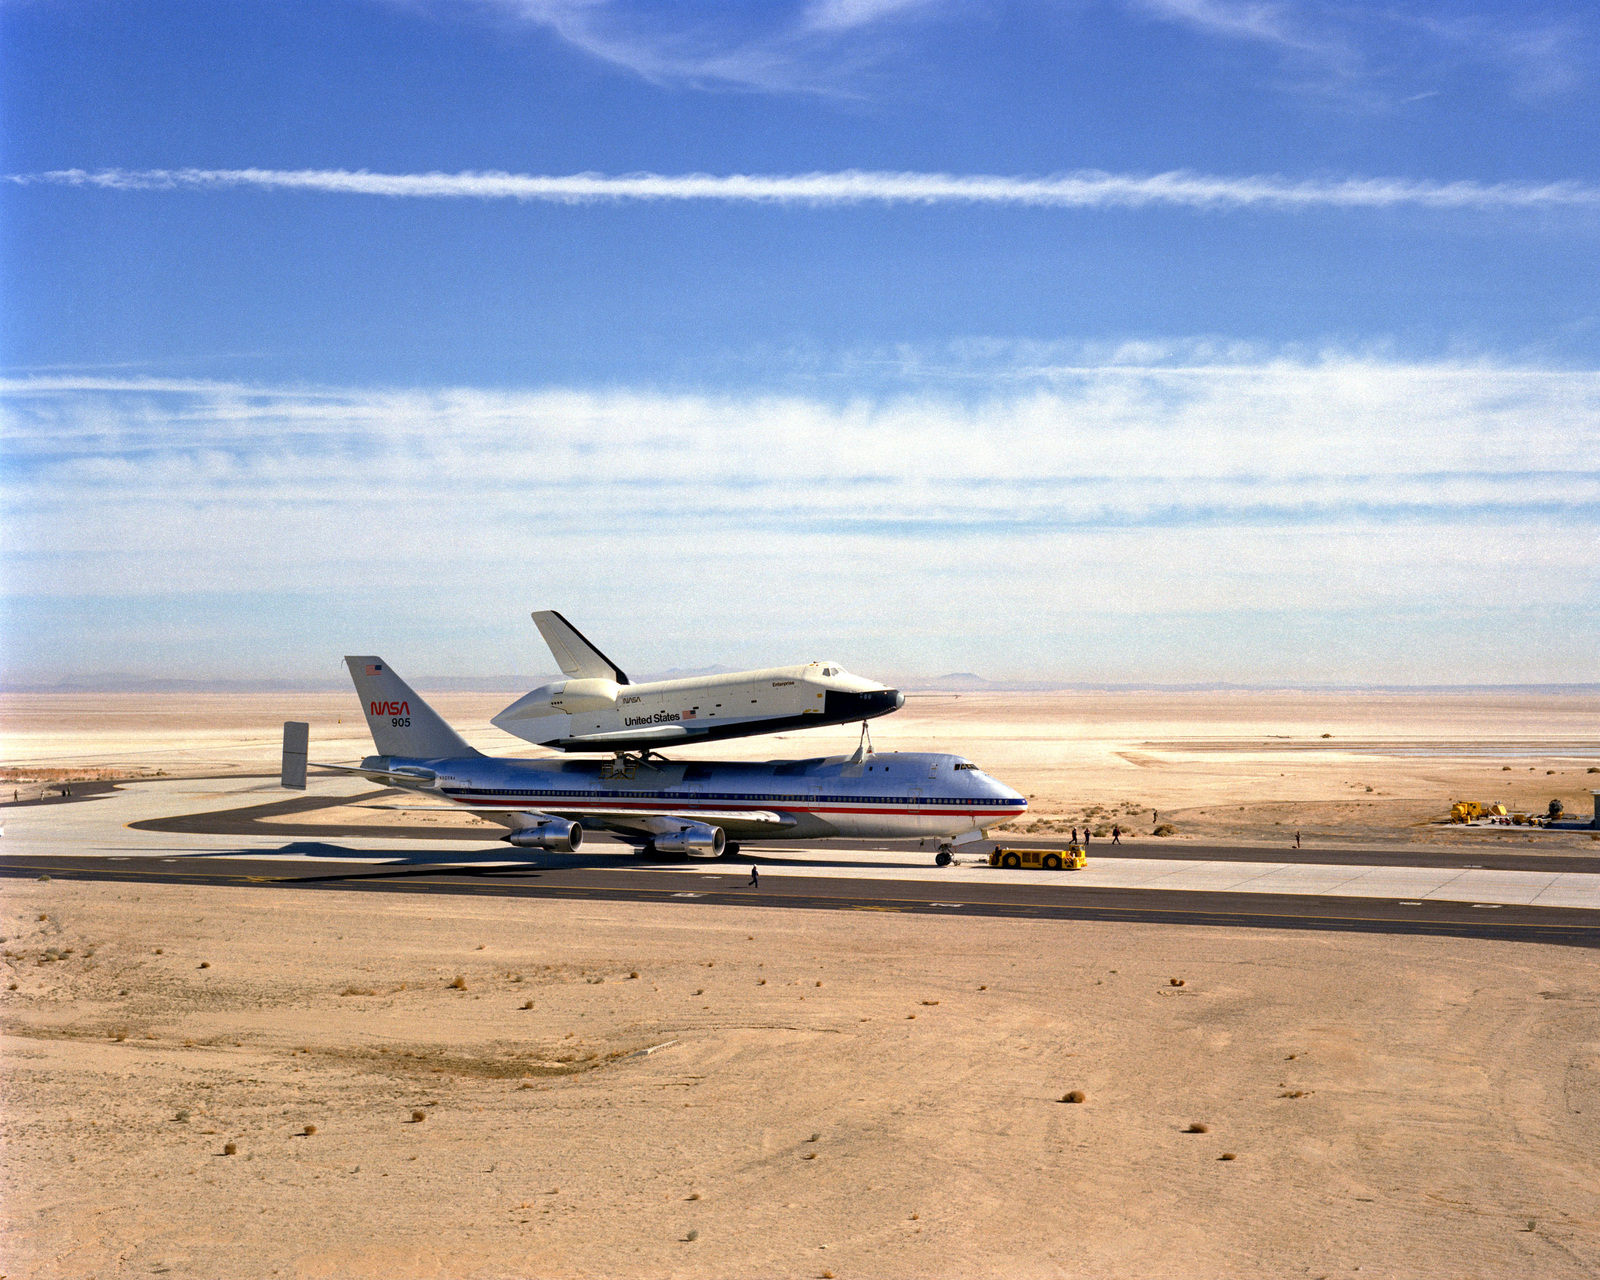 A right side view of the Space Shuttle Orbiter Enterprise and its specially-modified 747 transport aircraft being towed to the Weight and Thrust Hangar for vibration testing